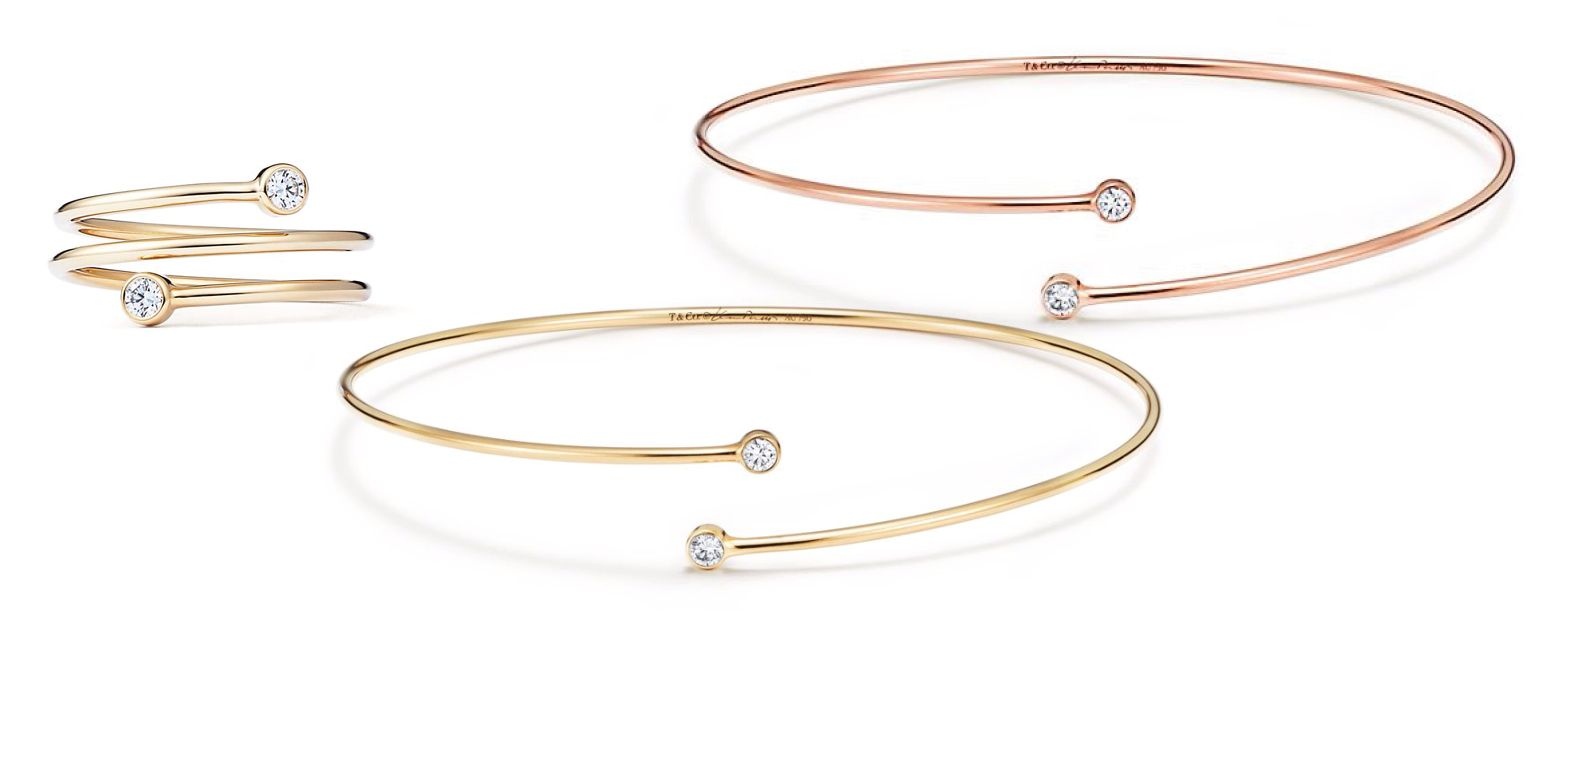 Why Tiffany's Elsa Peretti Jewellery Is The Perfect Christmas Gift